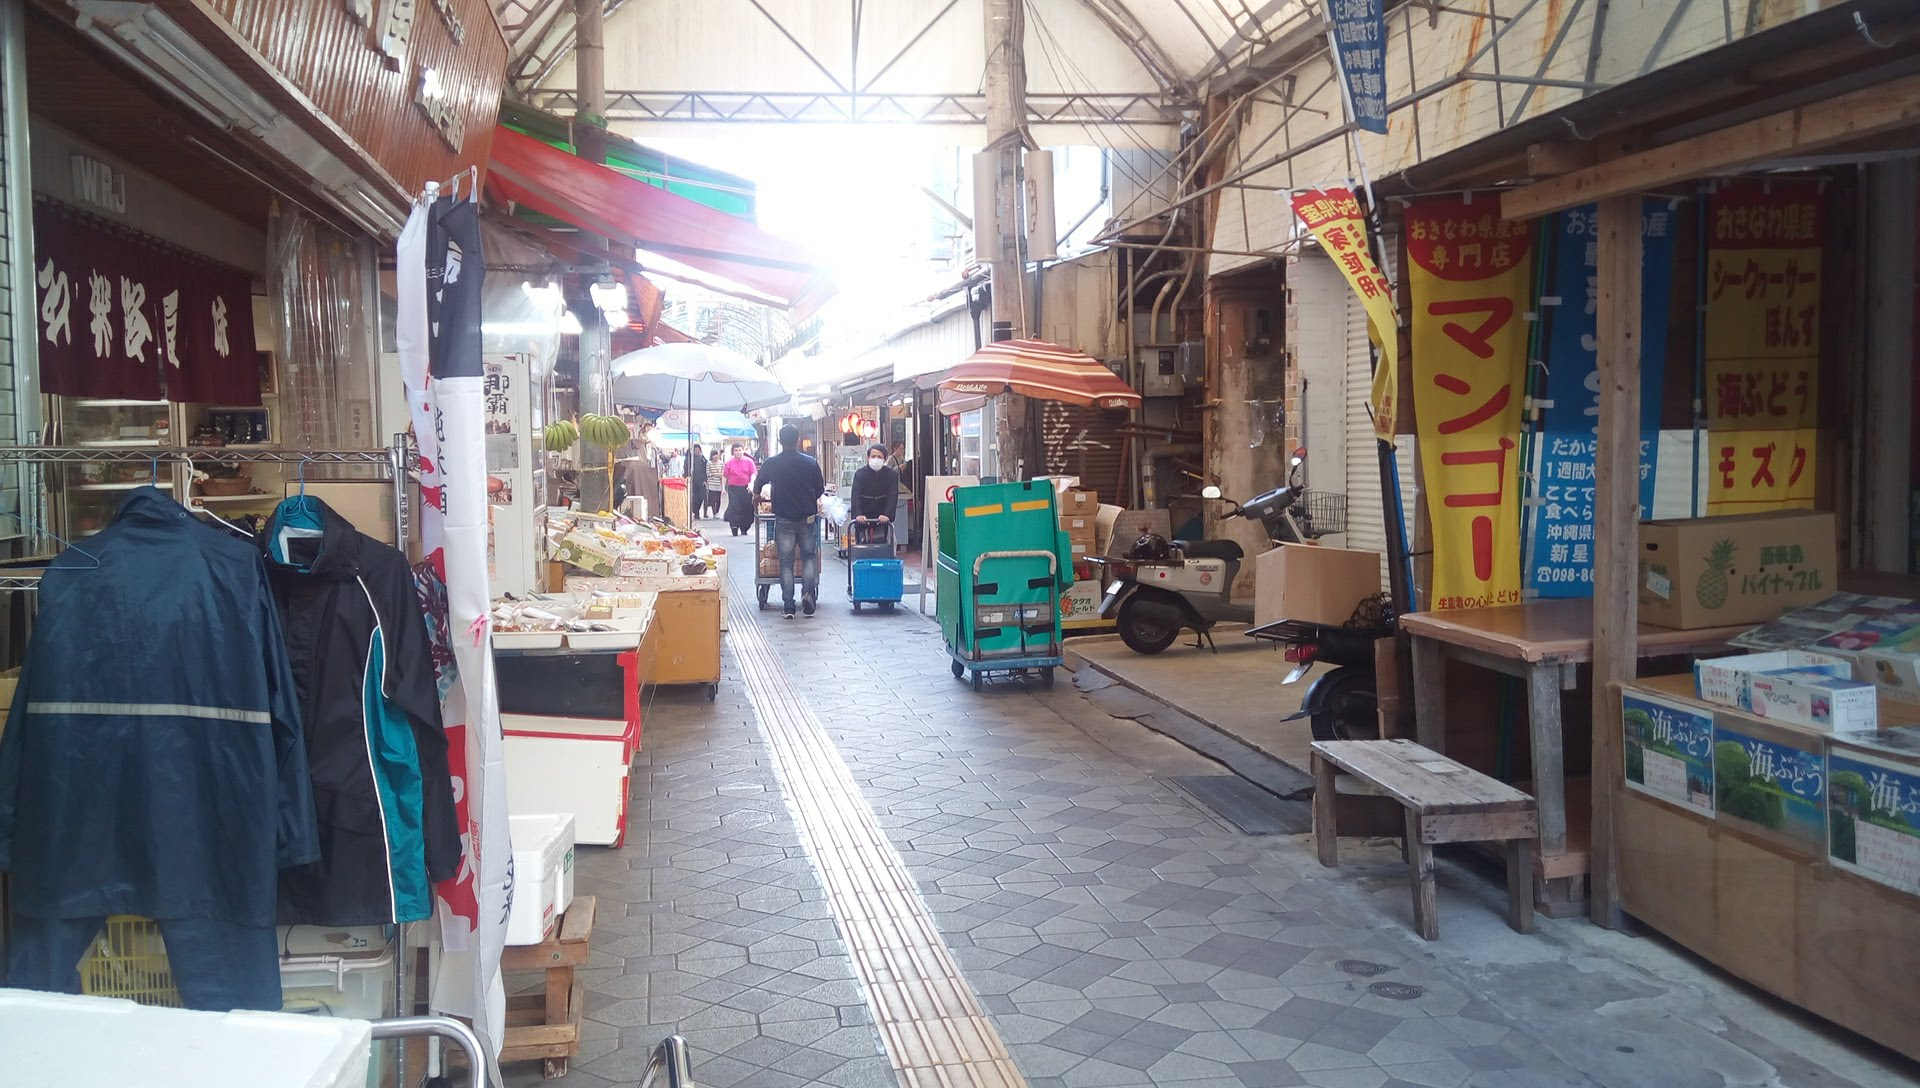 There are many Izakaya recommended as well beyond this road